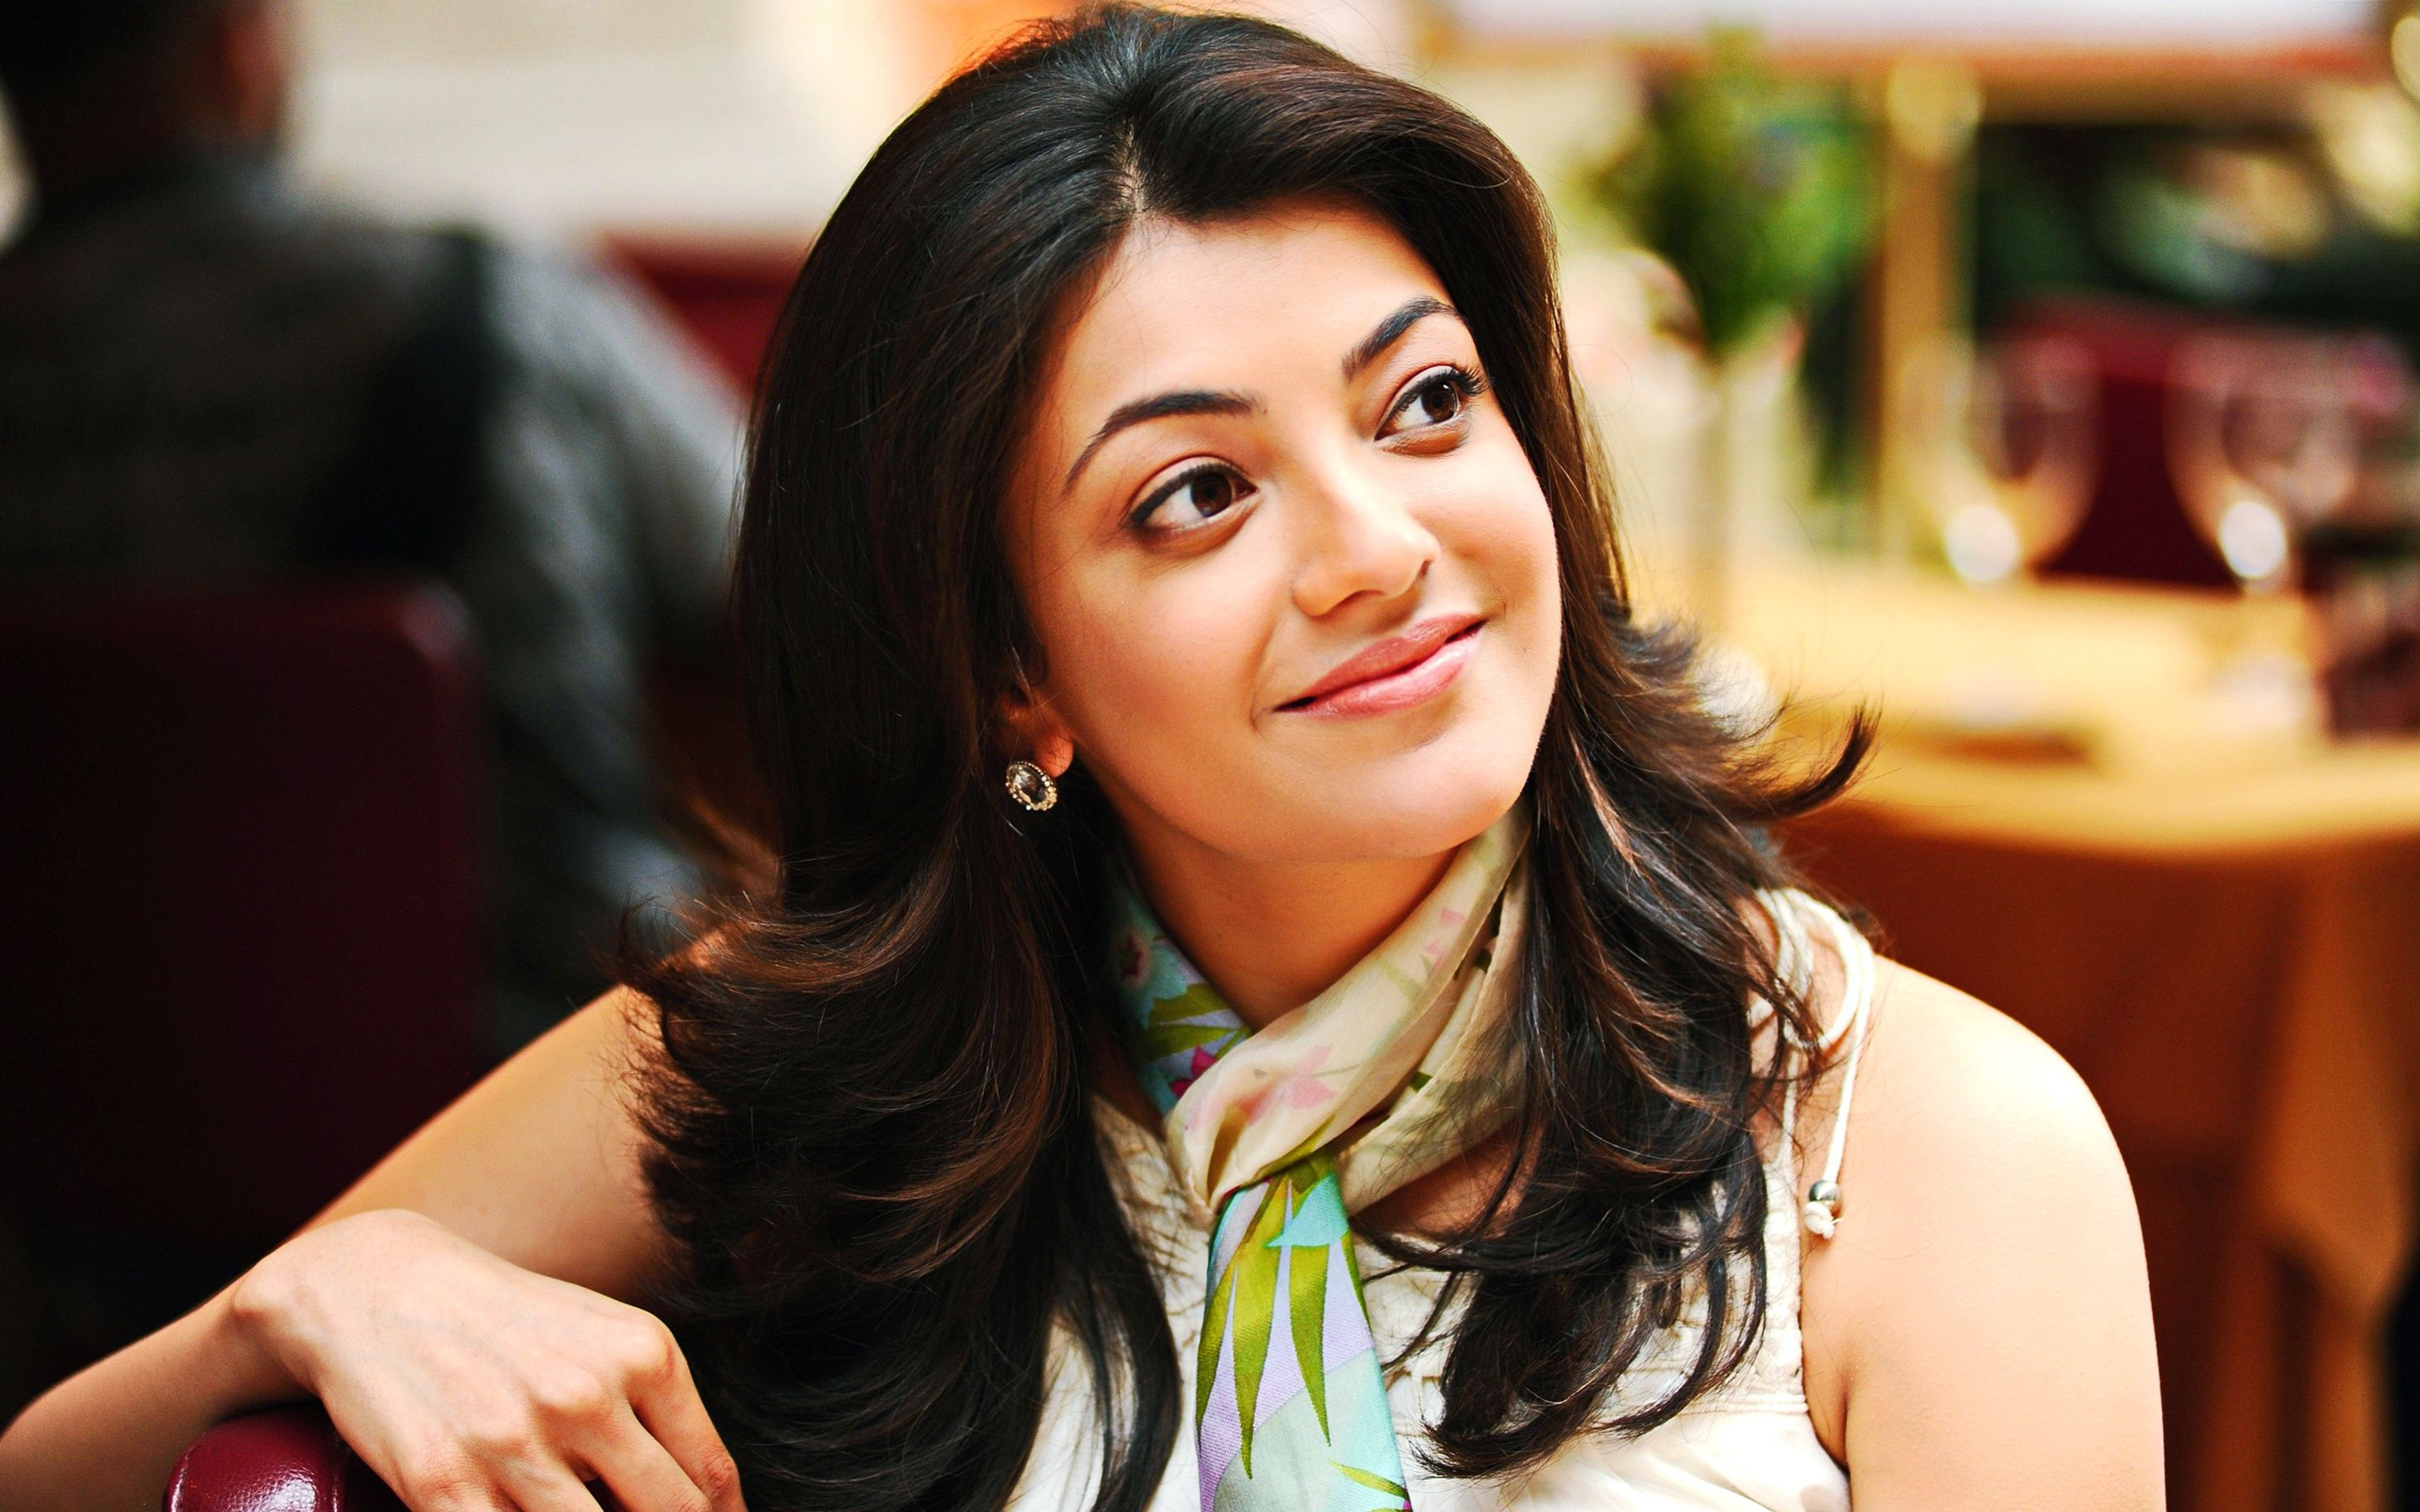 Wallpaper download kajal agarwal - Kajal Agarwal Images